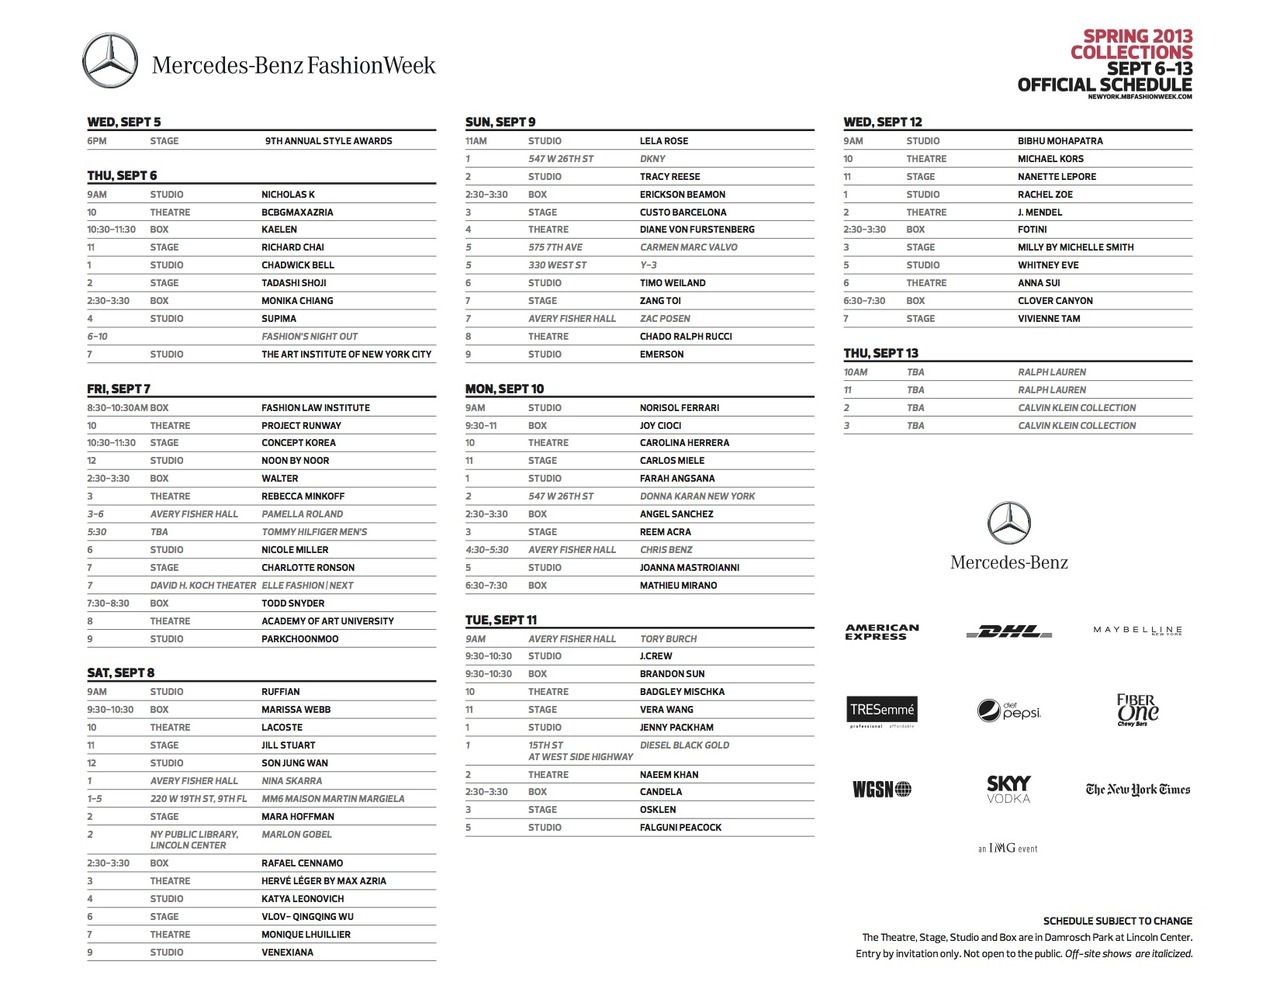 The the preliminary NYFW schedule. Can't wait for September! *This is majorly subject to change.